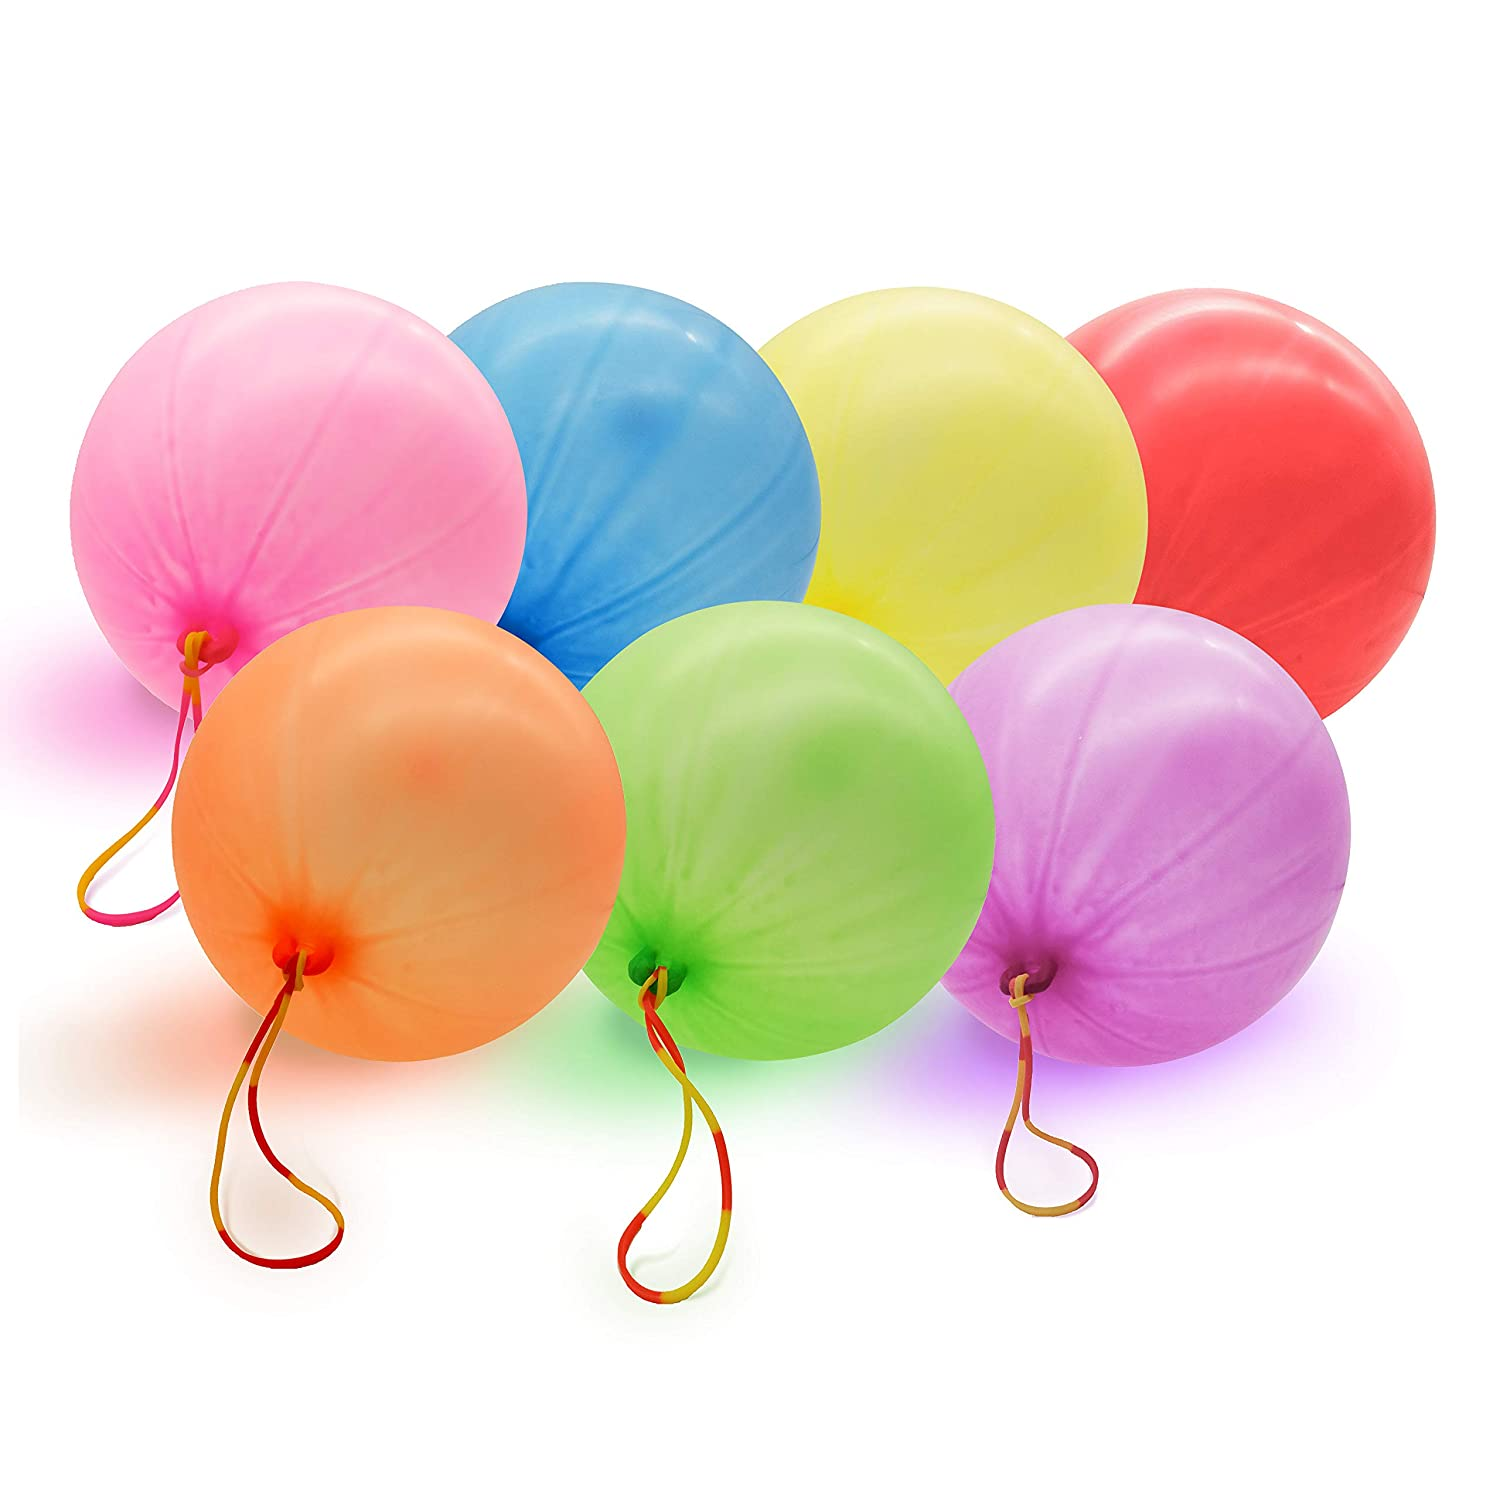 "Neon Punch Balloons - 35PCS 12"" - Fun-Filled Kids Games and Party Games"